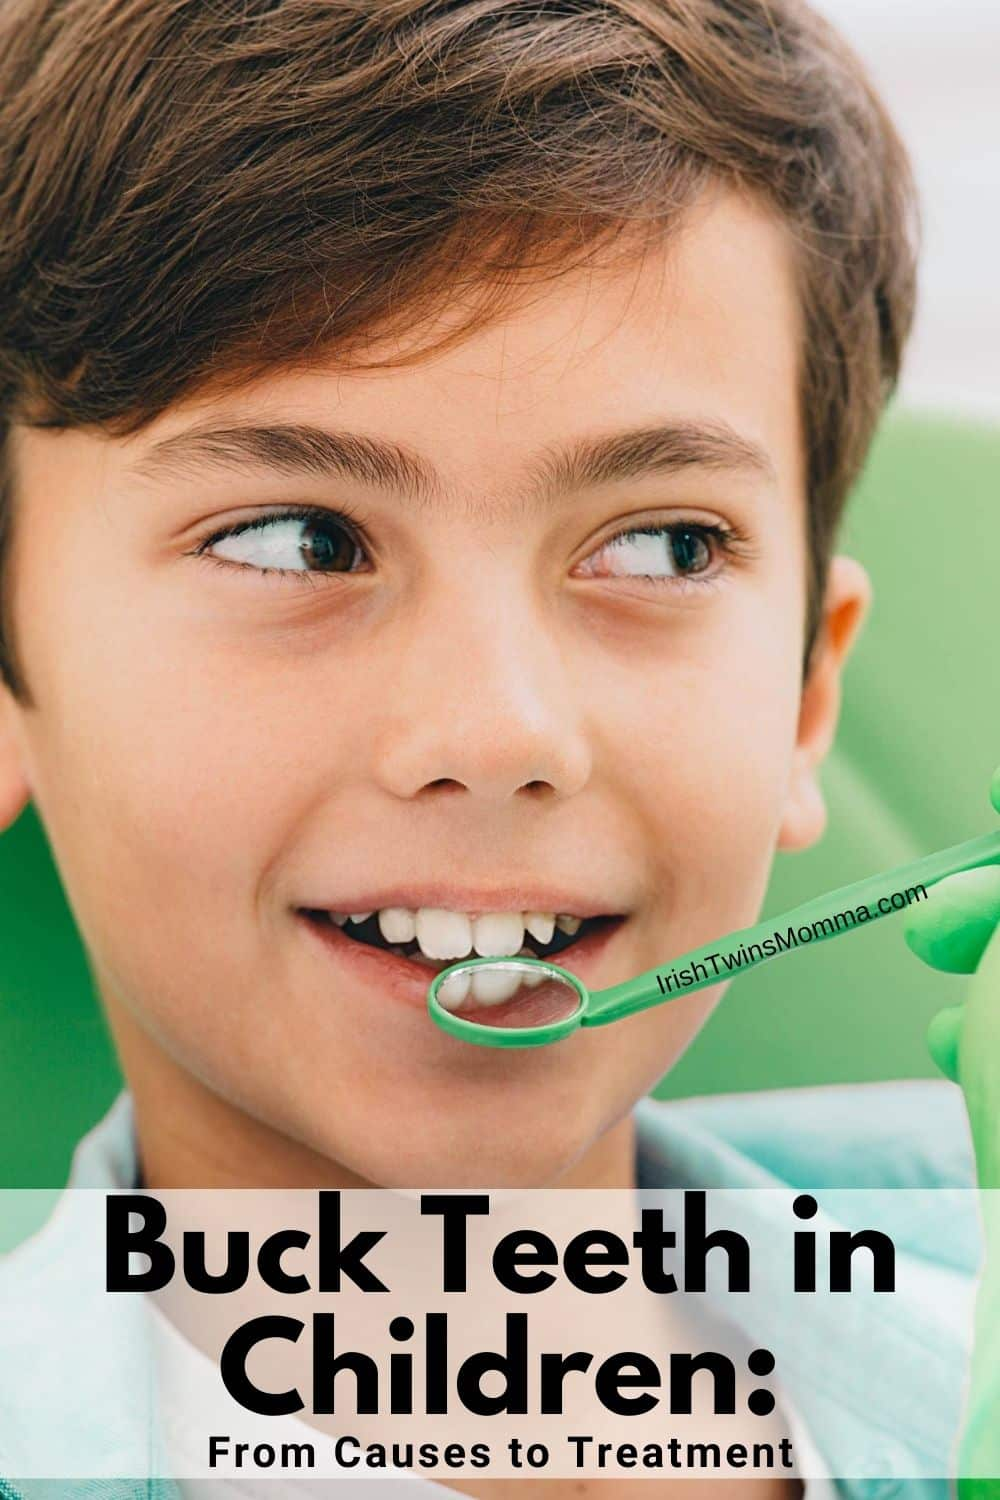 Buck teeth are one of the most common dental occurrences in children. In this condition, the upper set of front teeth horizontally overlaps the lower ones. It is essential to consult an orthodontist at the earliest to figure out an effective buck teeth correction procedure to protect your child from other issues that arise. This article will help you learn the causes of buck teeth in children and also understand the ways you can get them fixed. via @irishtwinsmom11